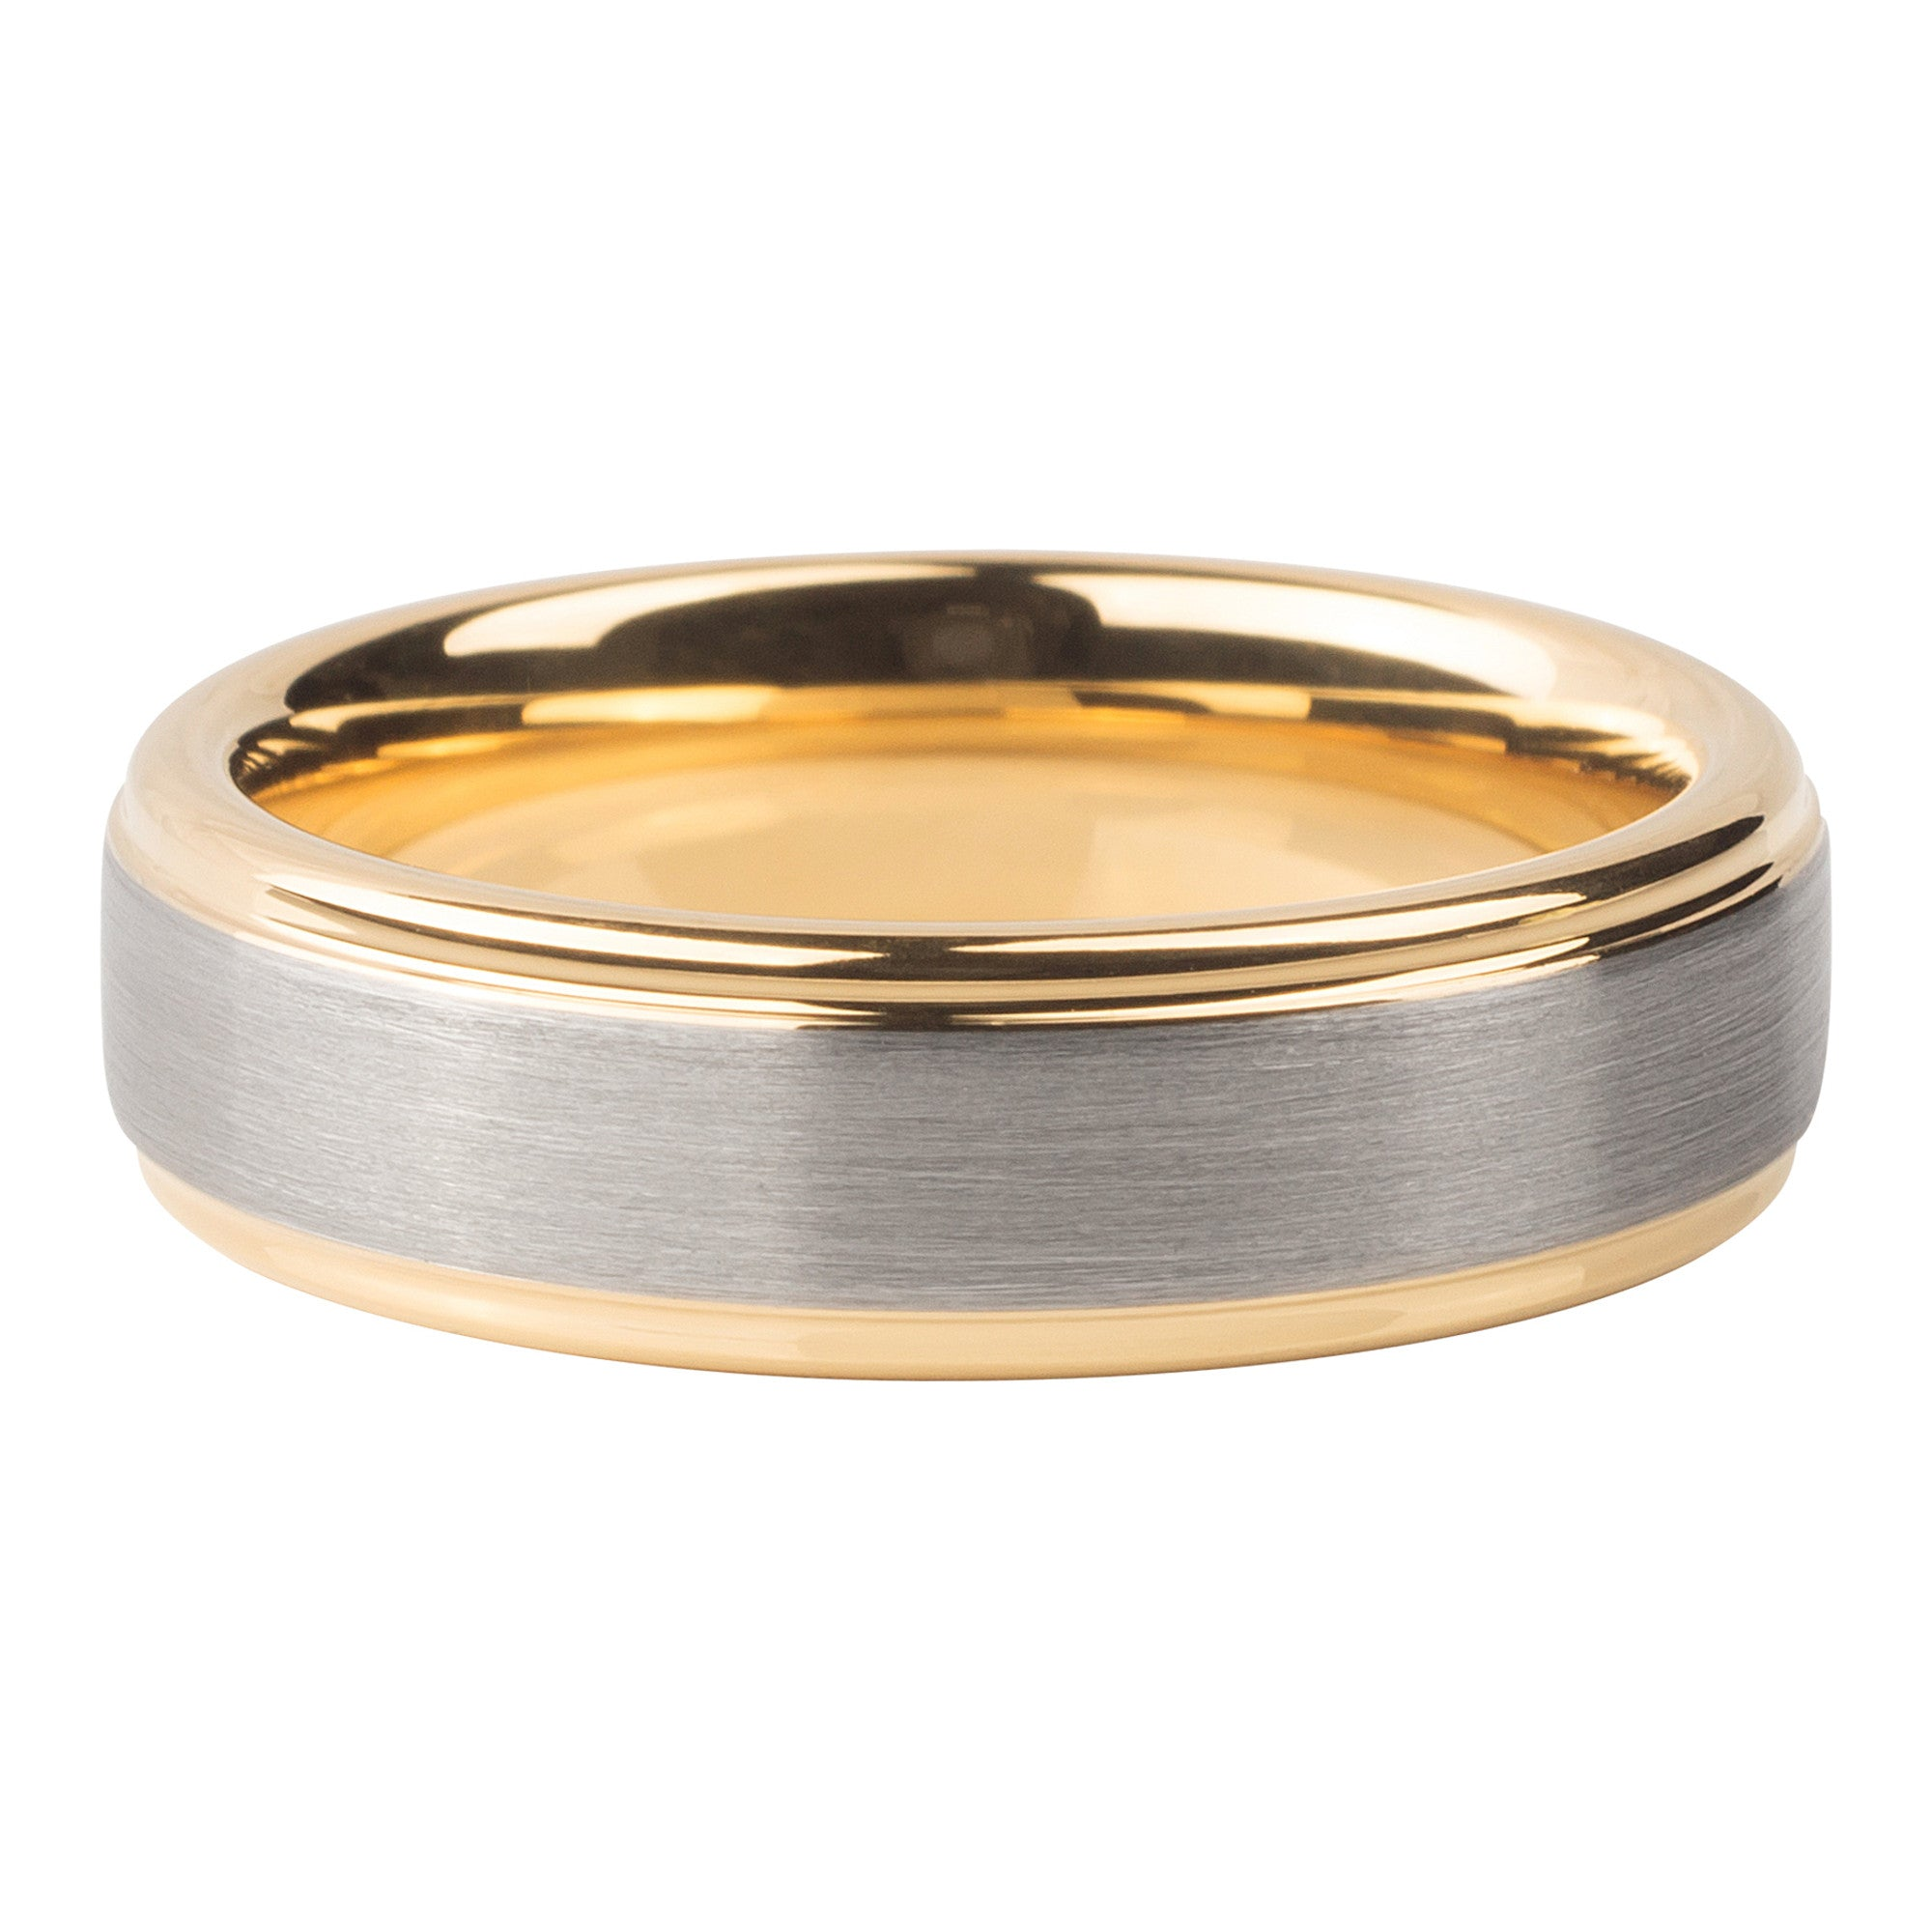 Silver brushed gold interior ring 6mm - Ring - MANOOCO - Ring - manooco